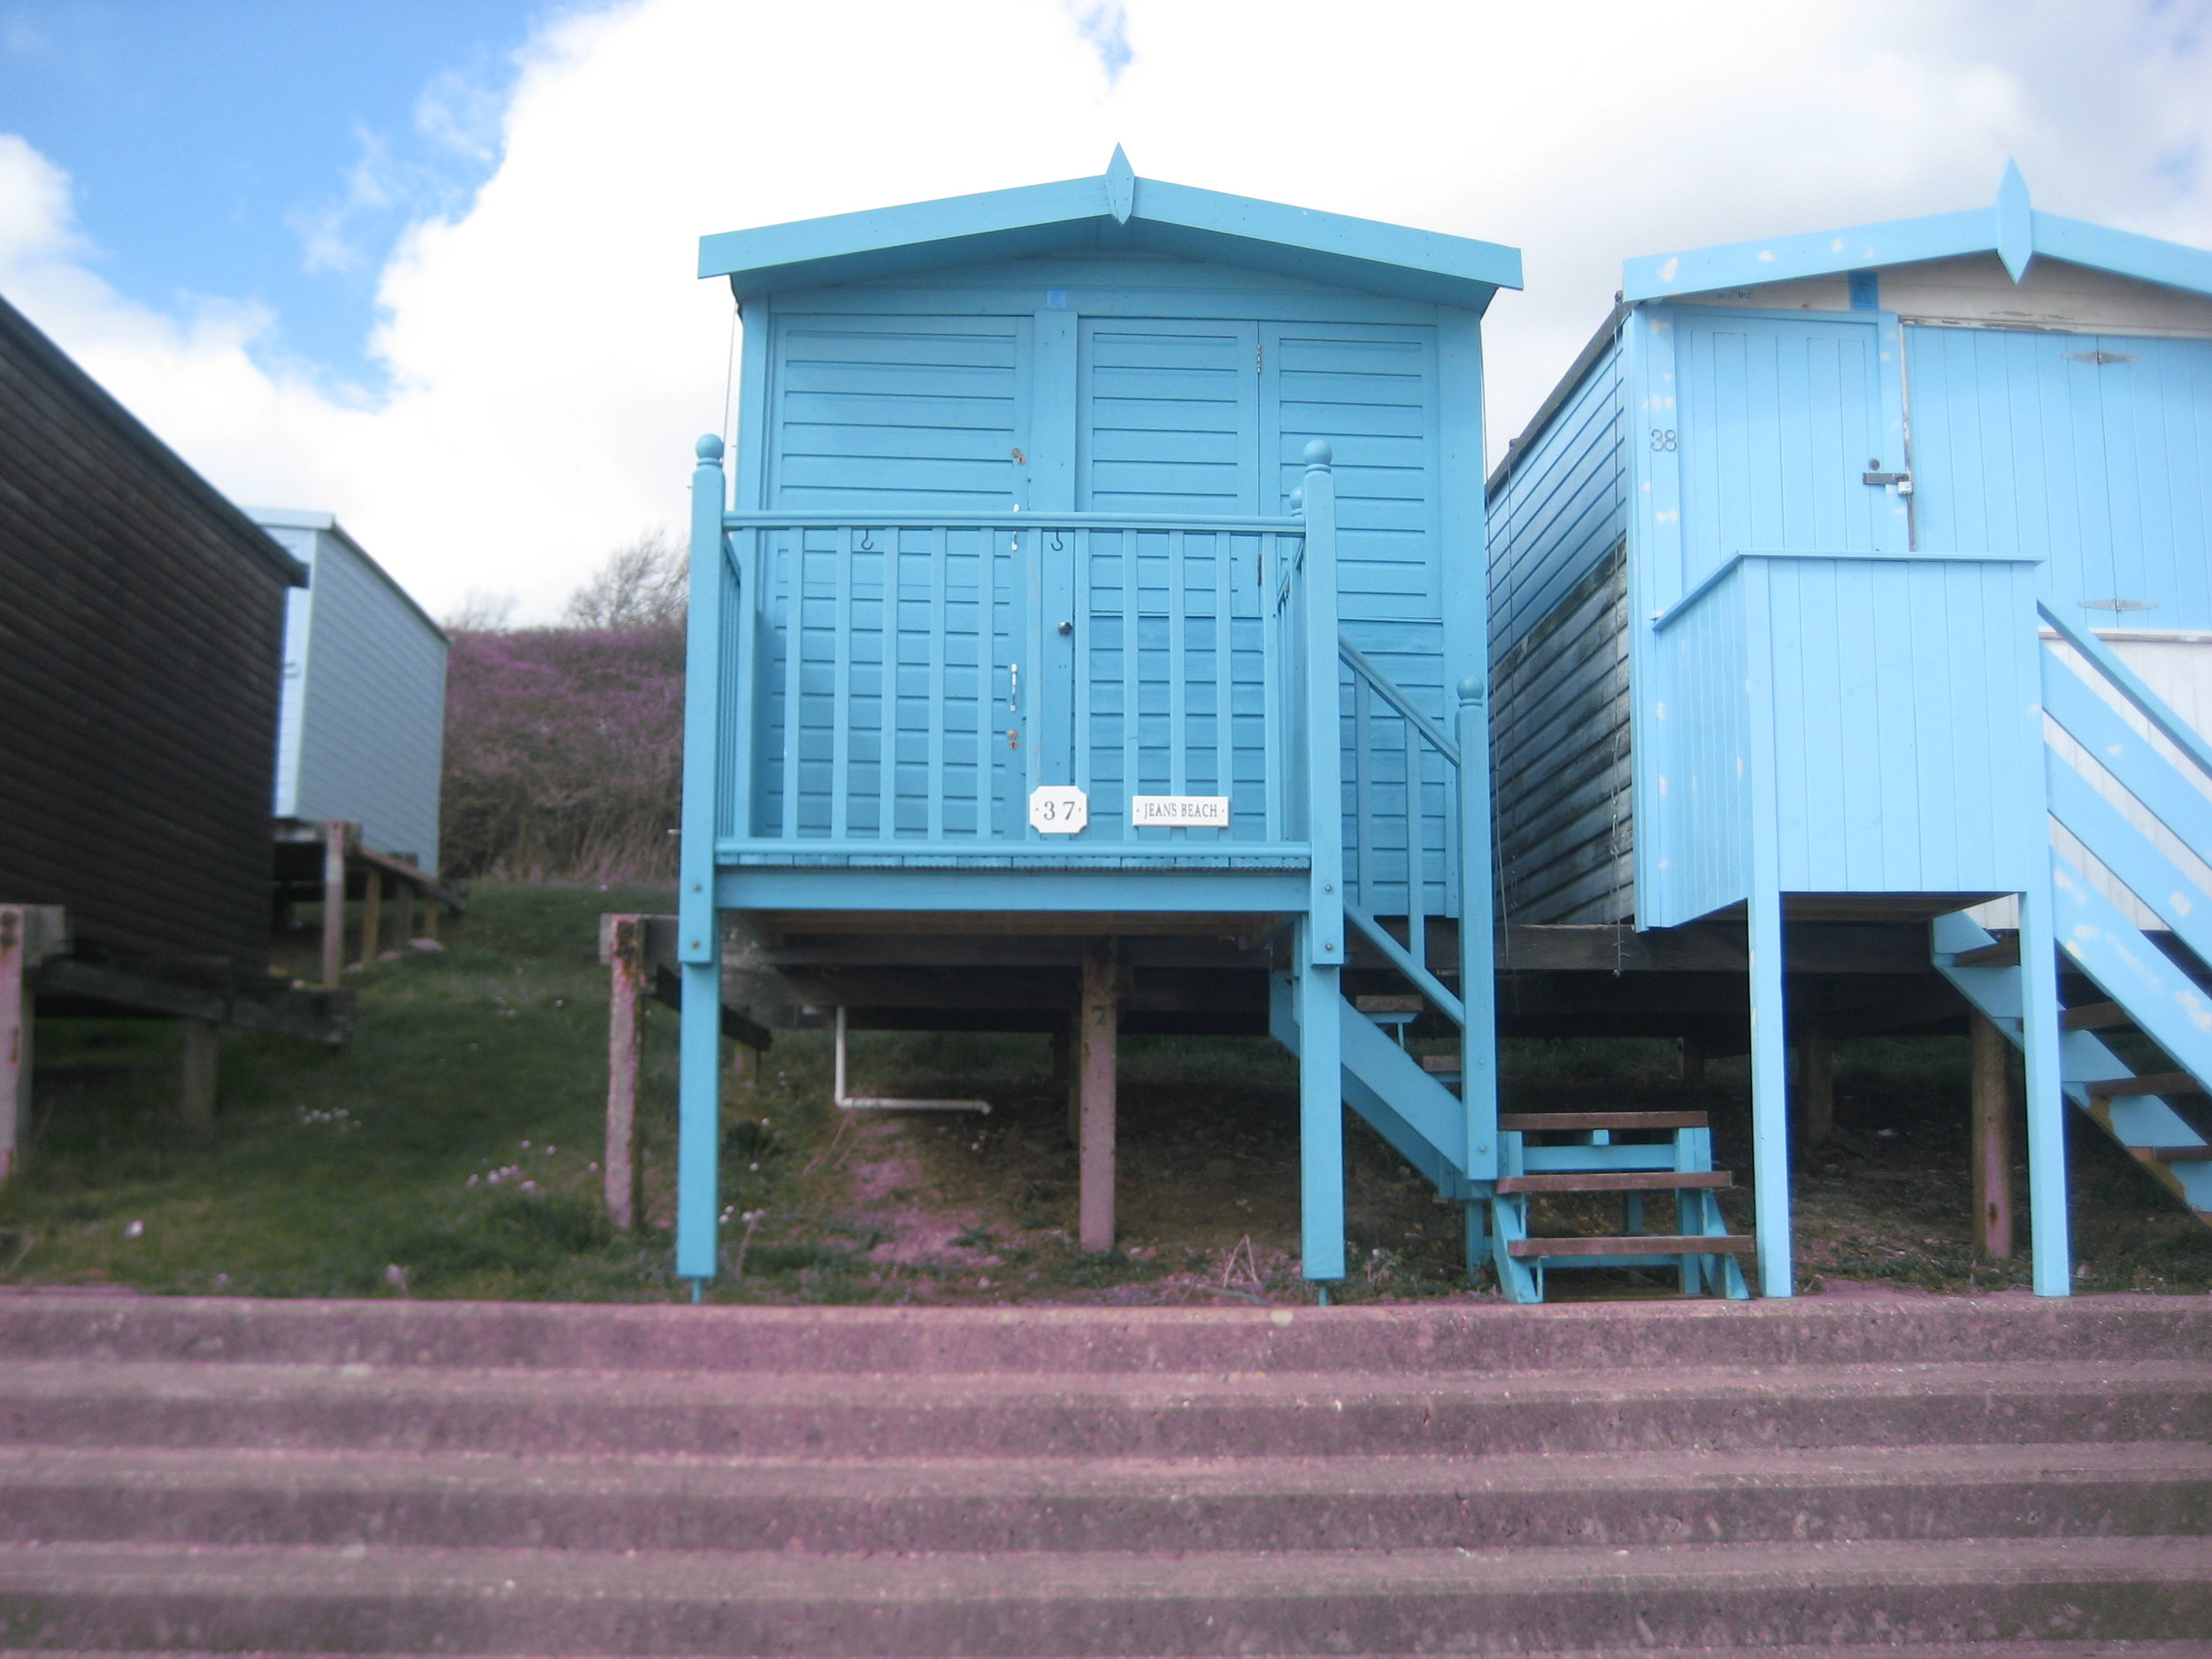 Sue and Ray's Beach Hut -37, The Leas, Frinton, CO13 9NN - for the perfect day out on a wonderful sandy beach.